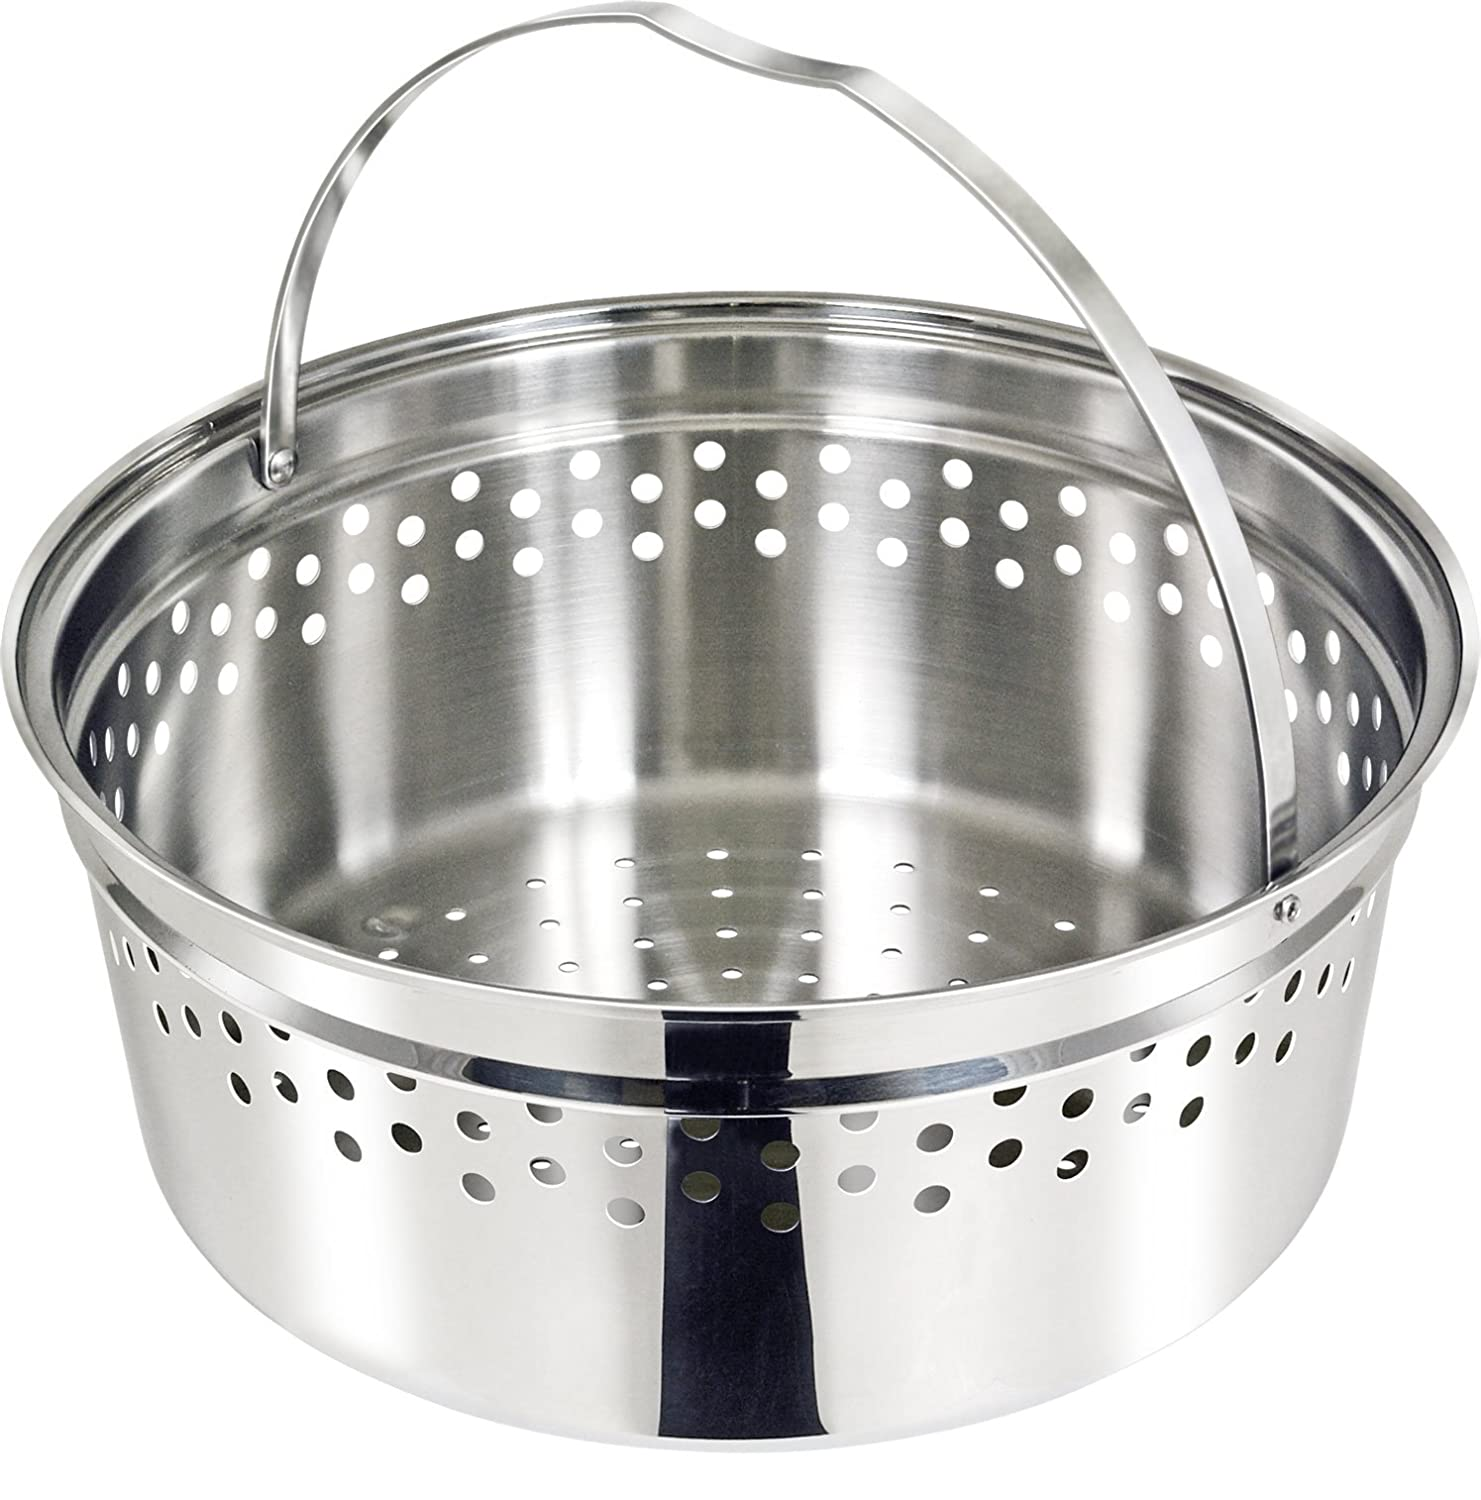 Magma Products, A10-367 Gourmet Nesting Stainless Steel Colander